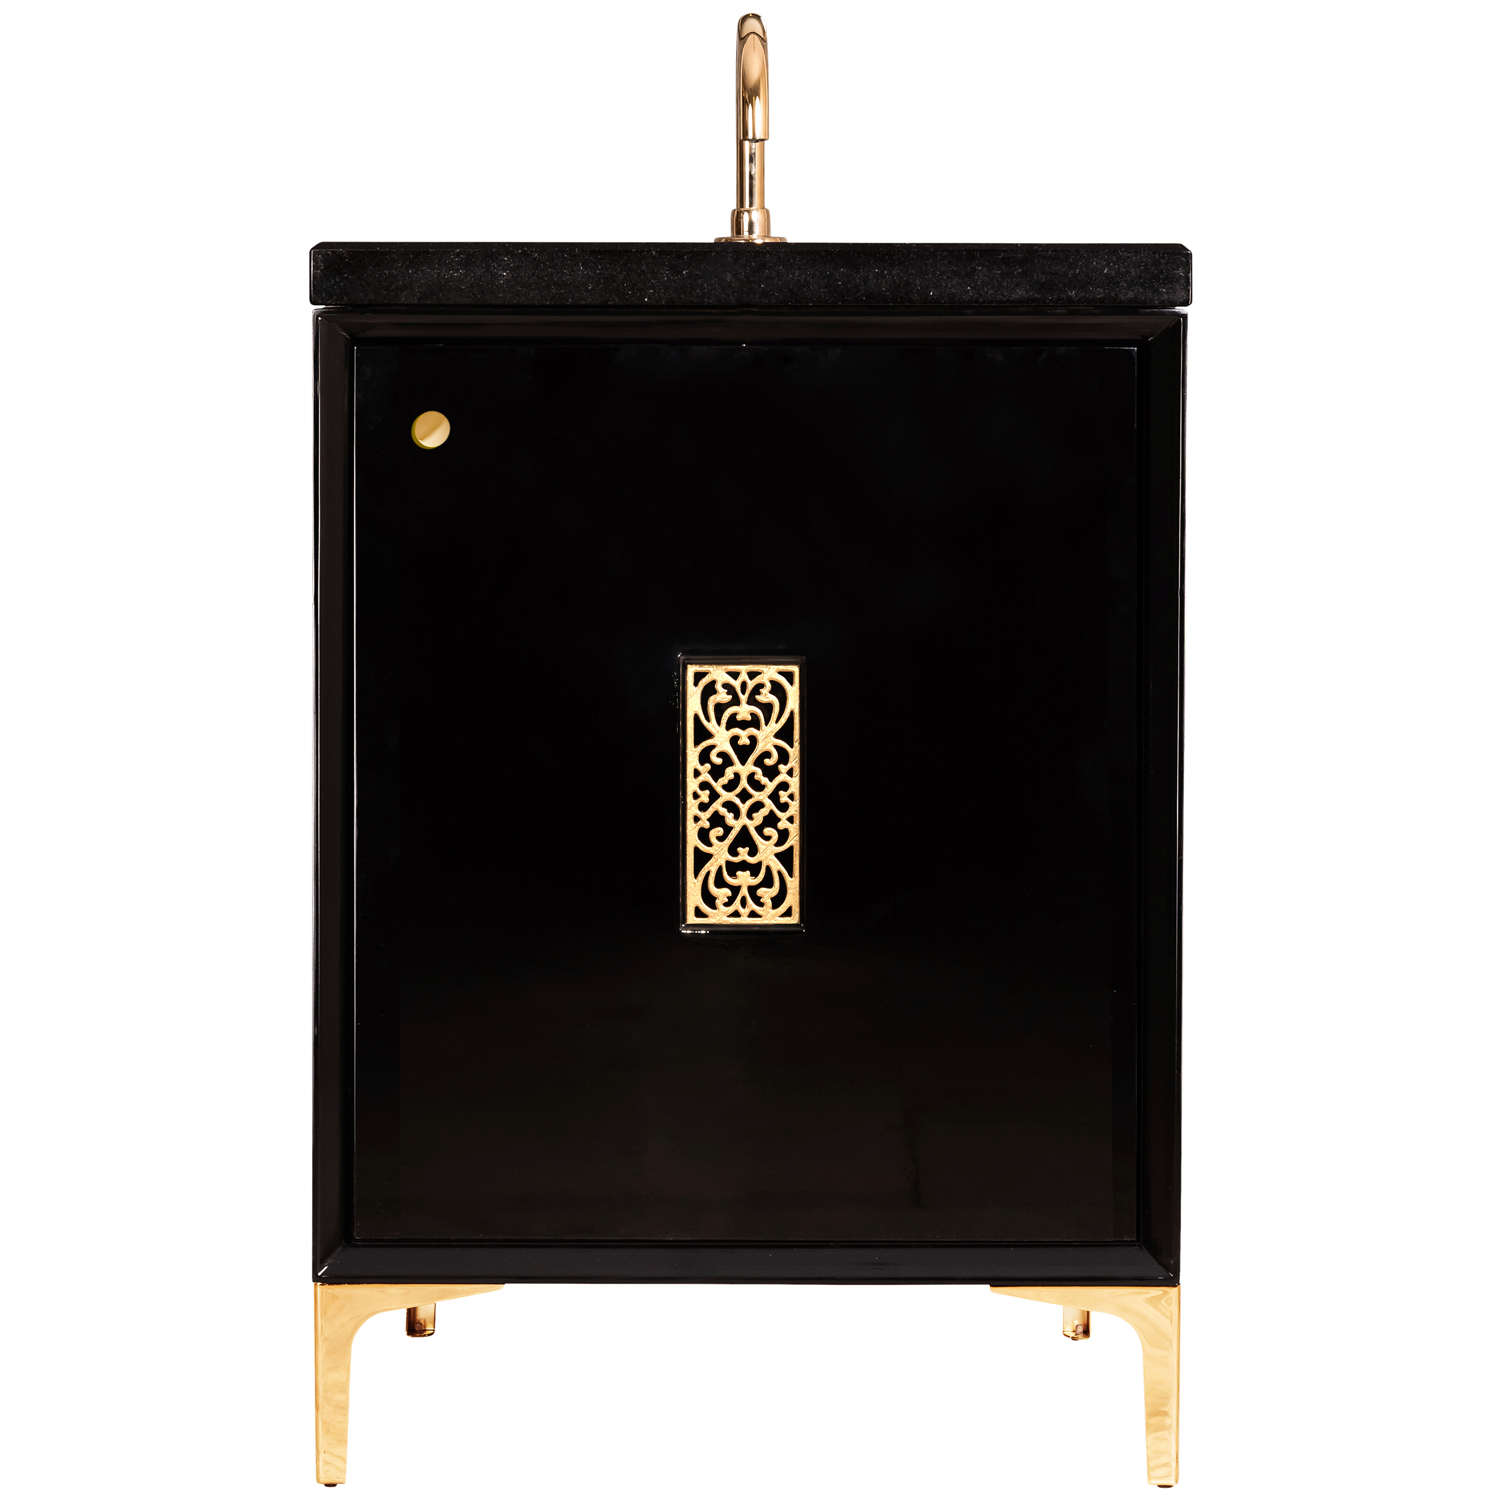 """VAN24B-012 24"""" Black Frame With Filigree - Shown with PB (Polished Brass)"""